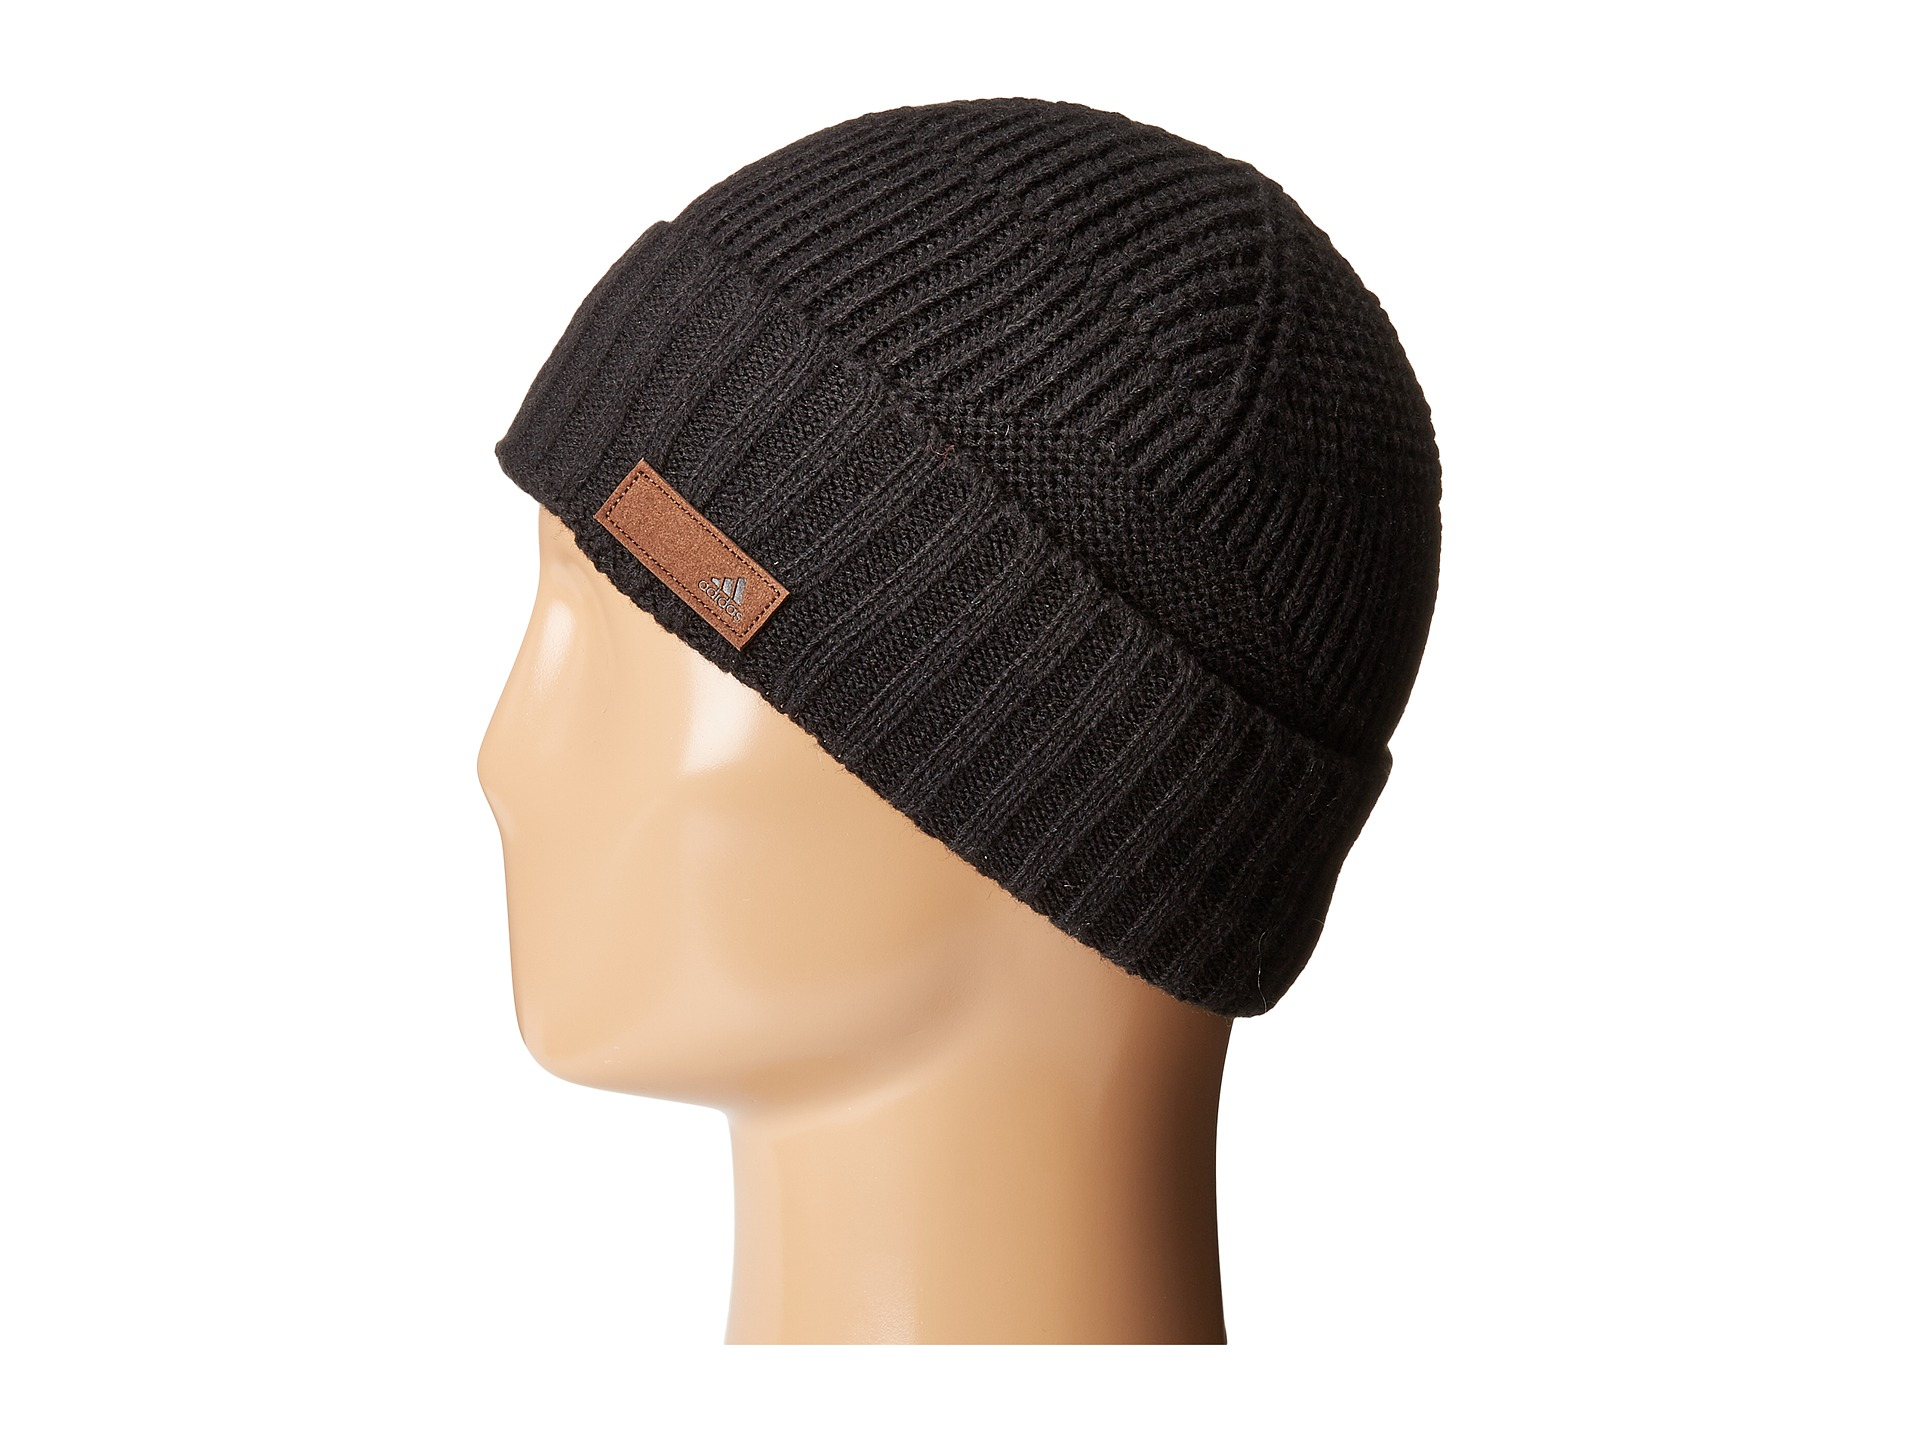 a4c8ccf938f4e adidas Originals Pine Knot Beanie in Black for Men - Lyst